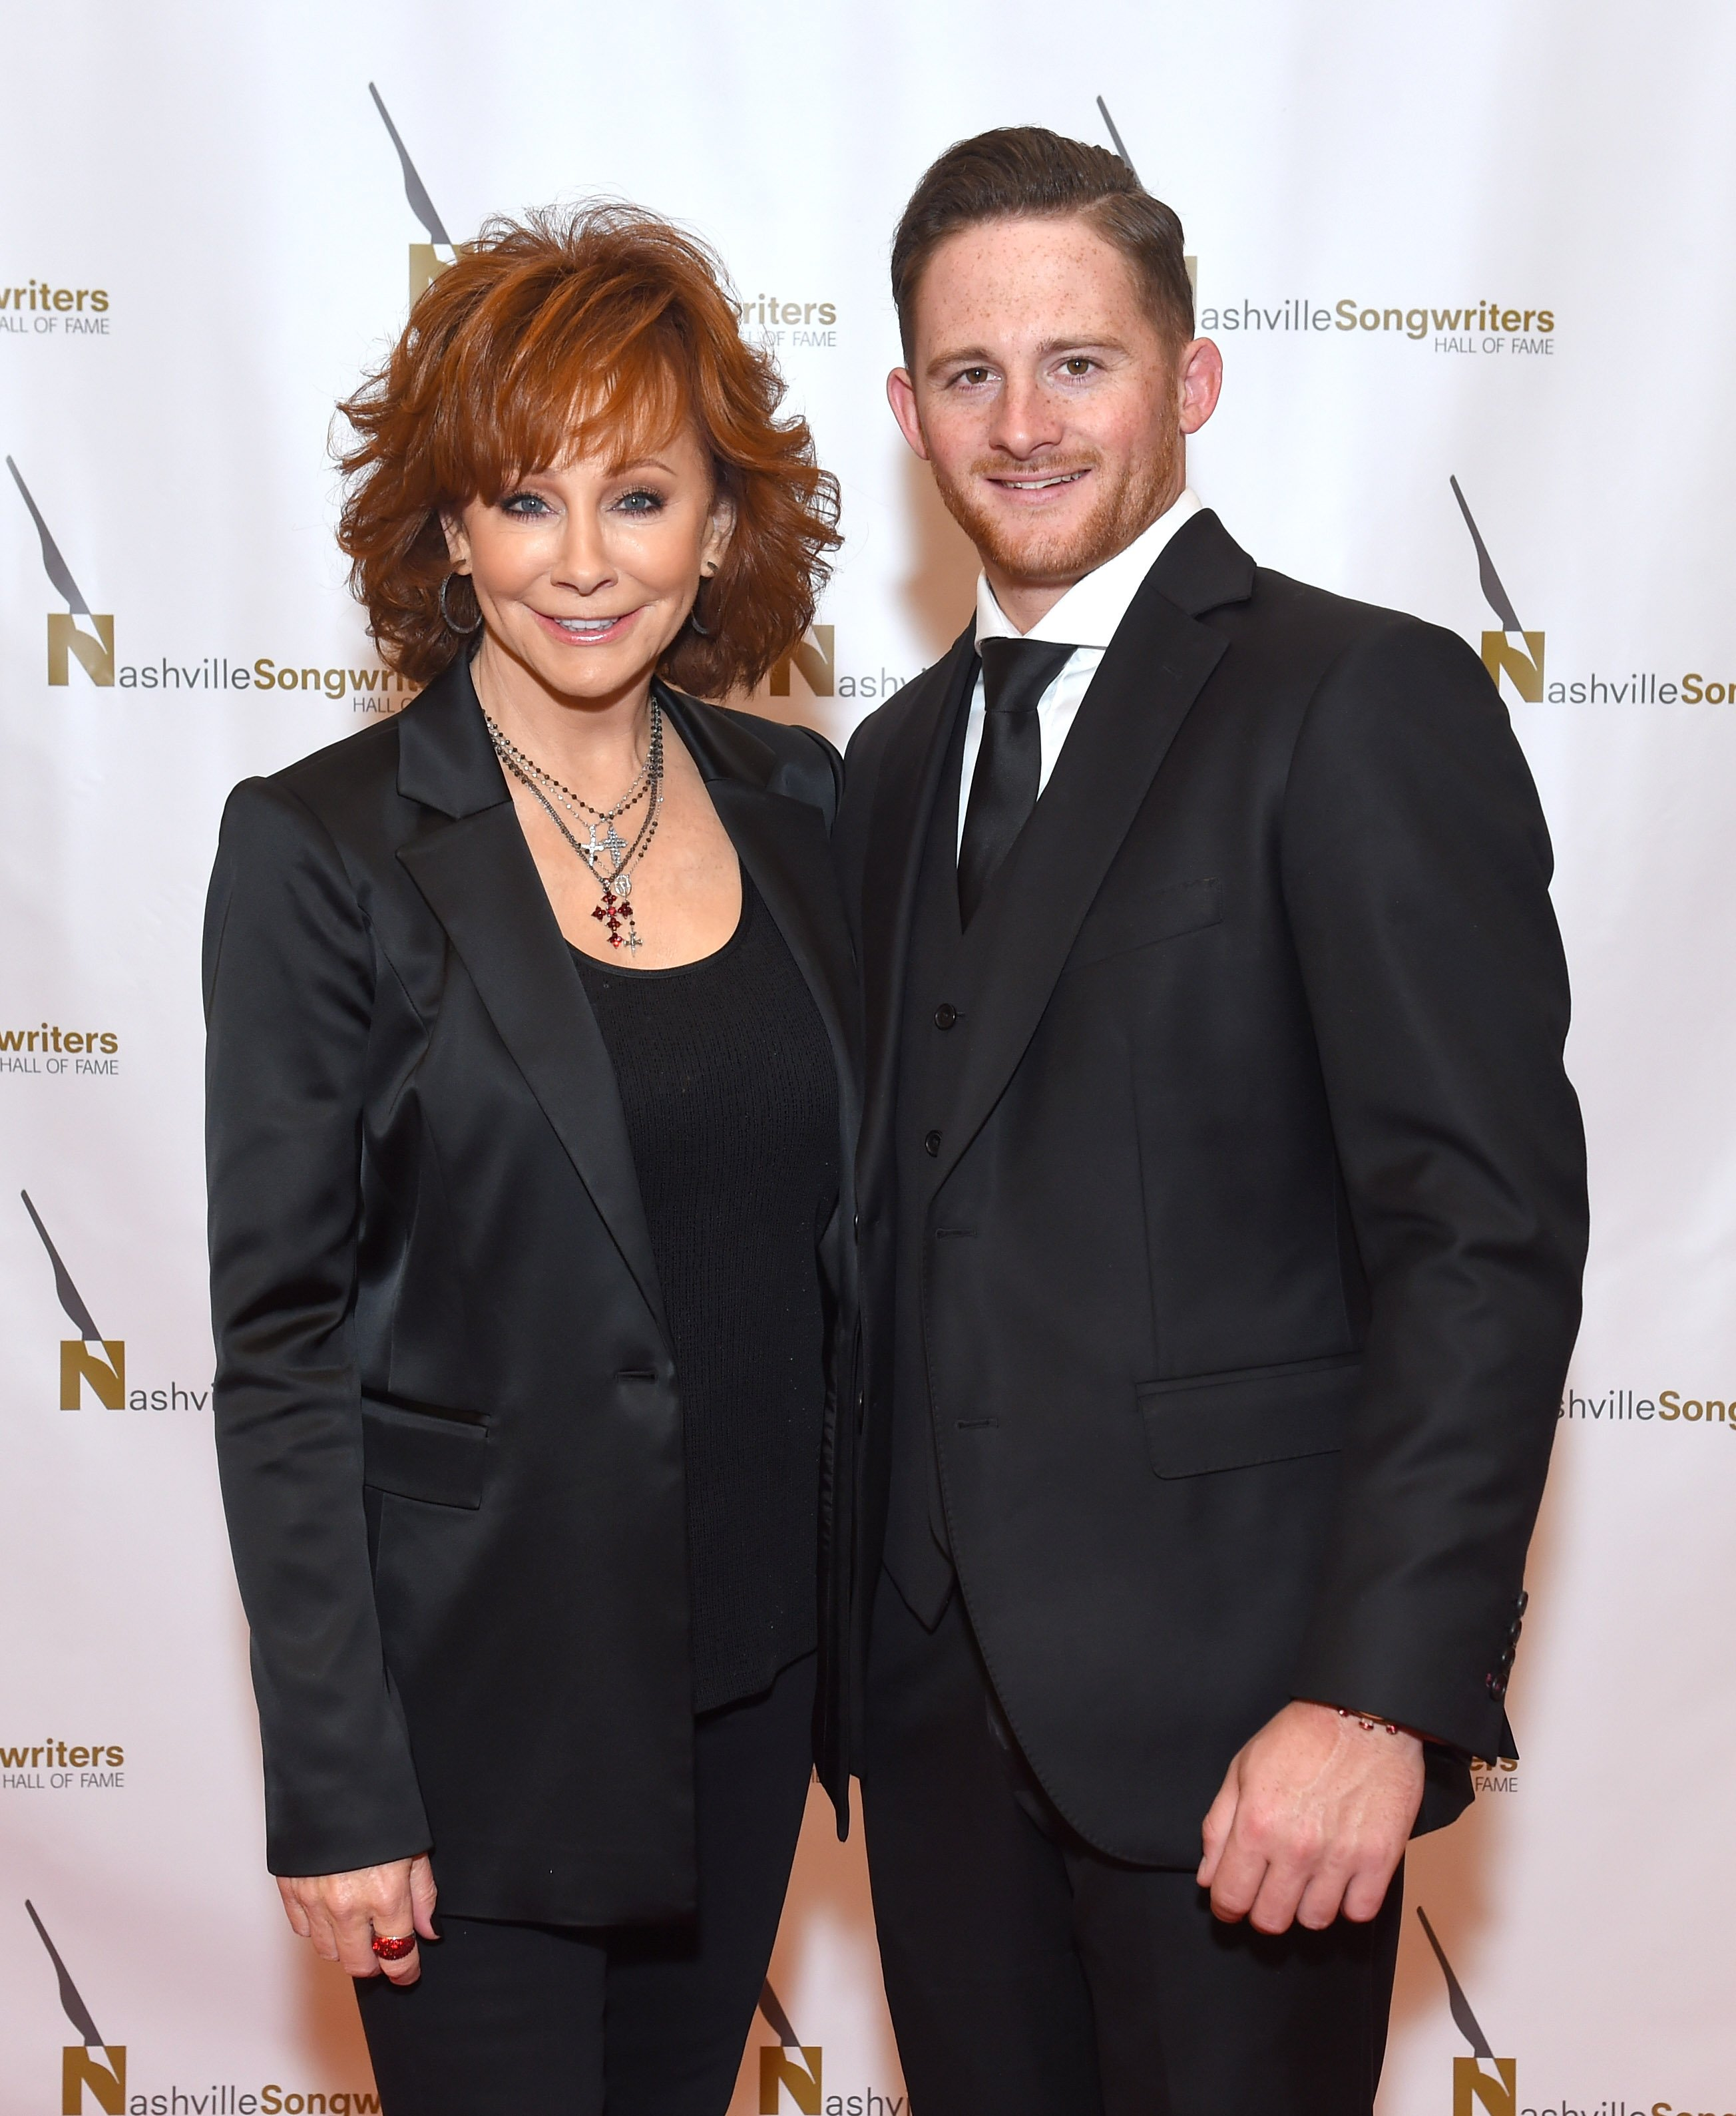 Reba McEntire and her son Shelby Blackstock at the 2018 Nashville Songwriters Hall Of Fame Gala on October 28, 2018. | Source: Getty Images